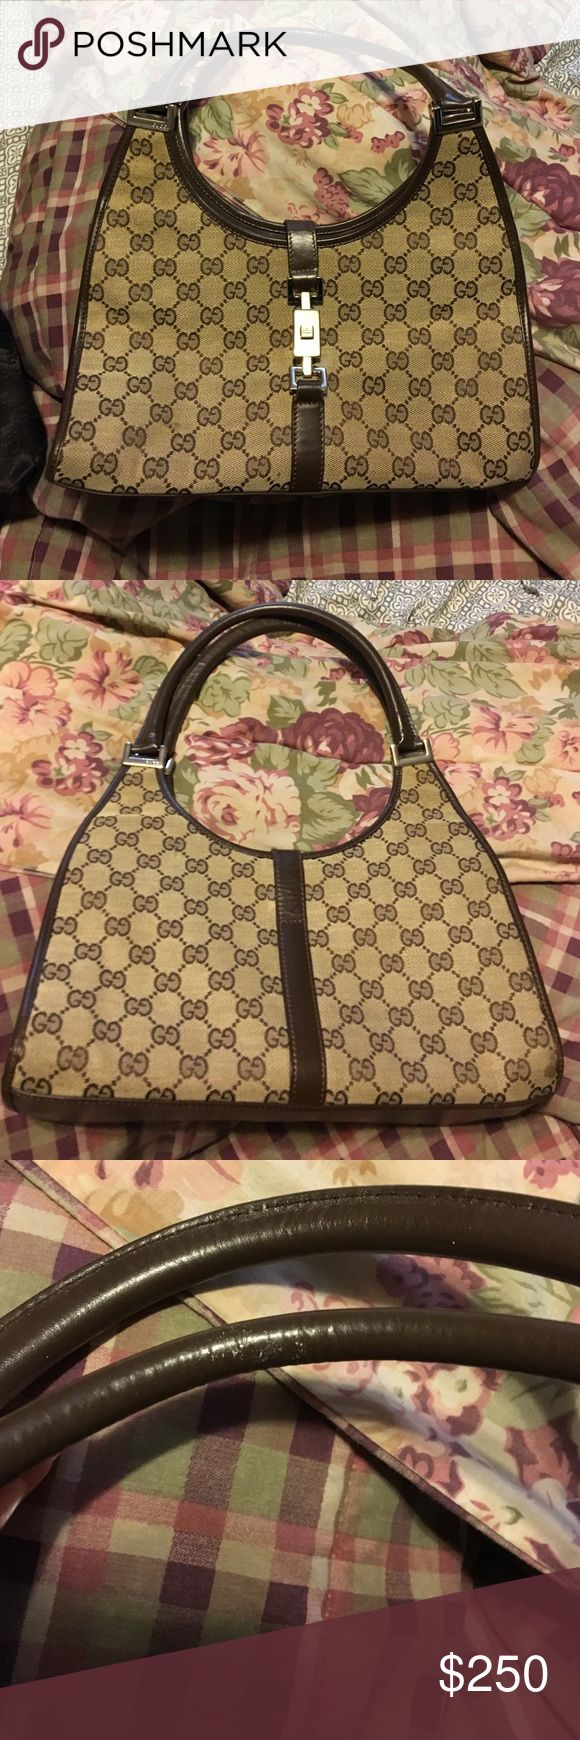 Gucci purse Like new gucci purse! Minimal signs of wear in great condition!! Comes with dust bag. Bags